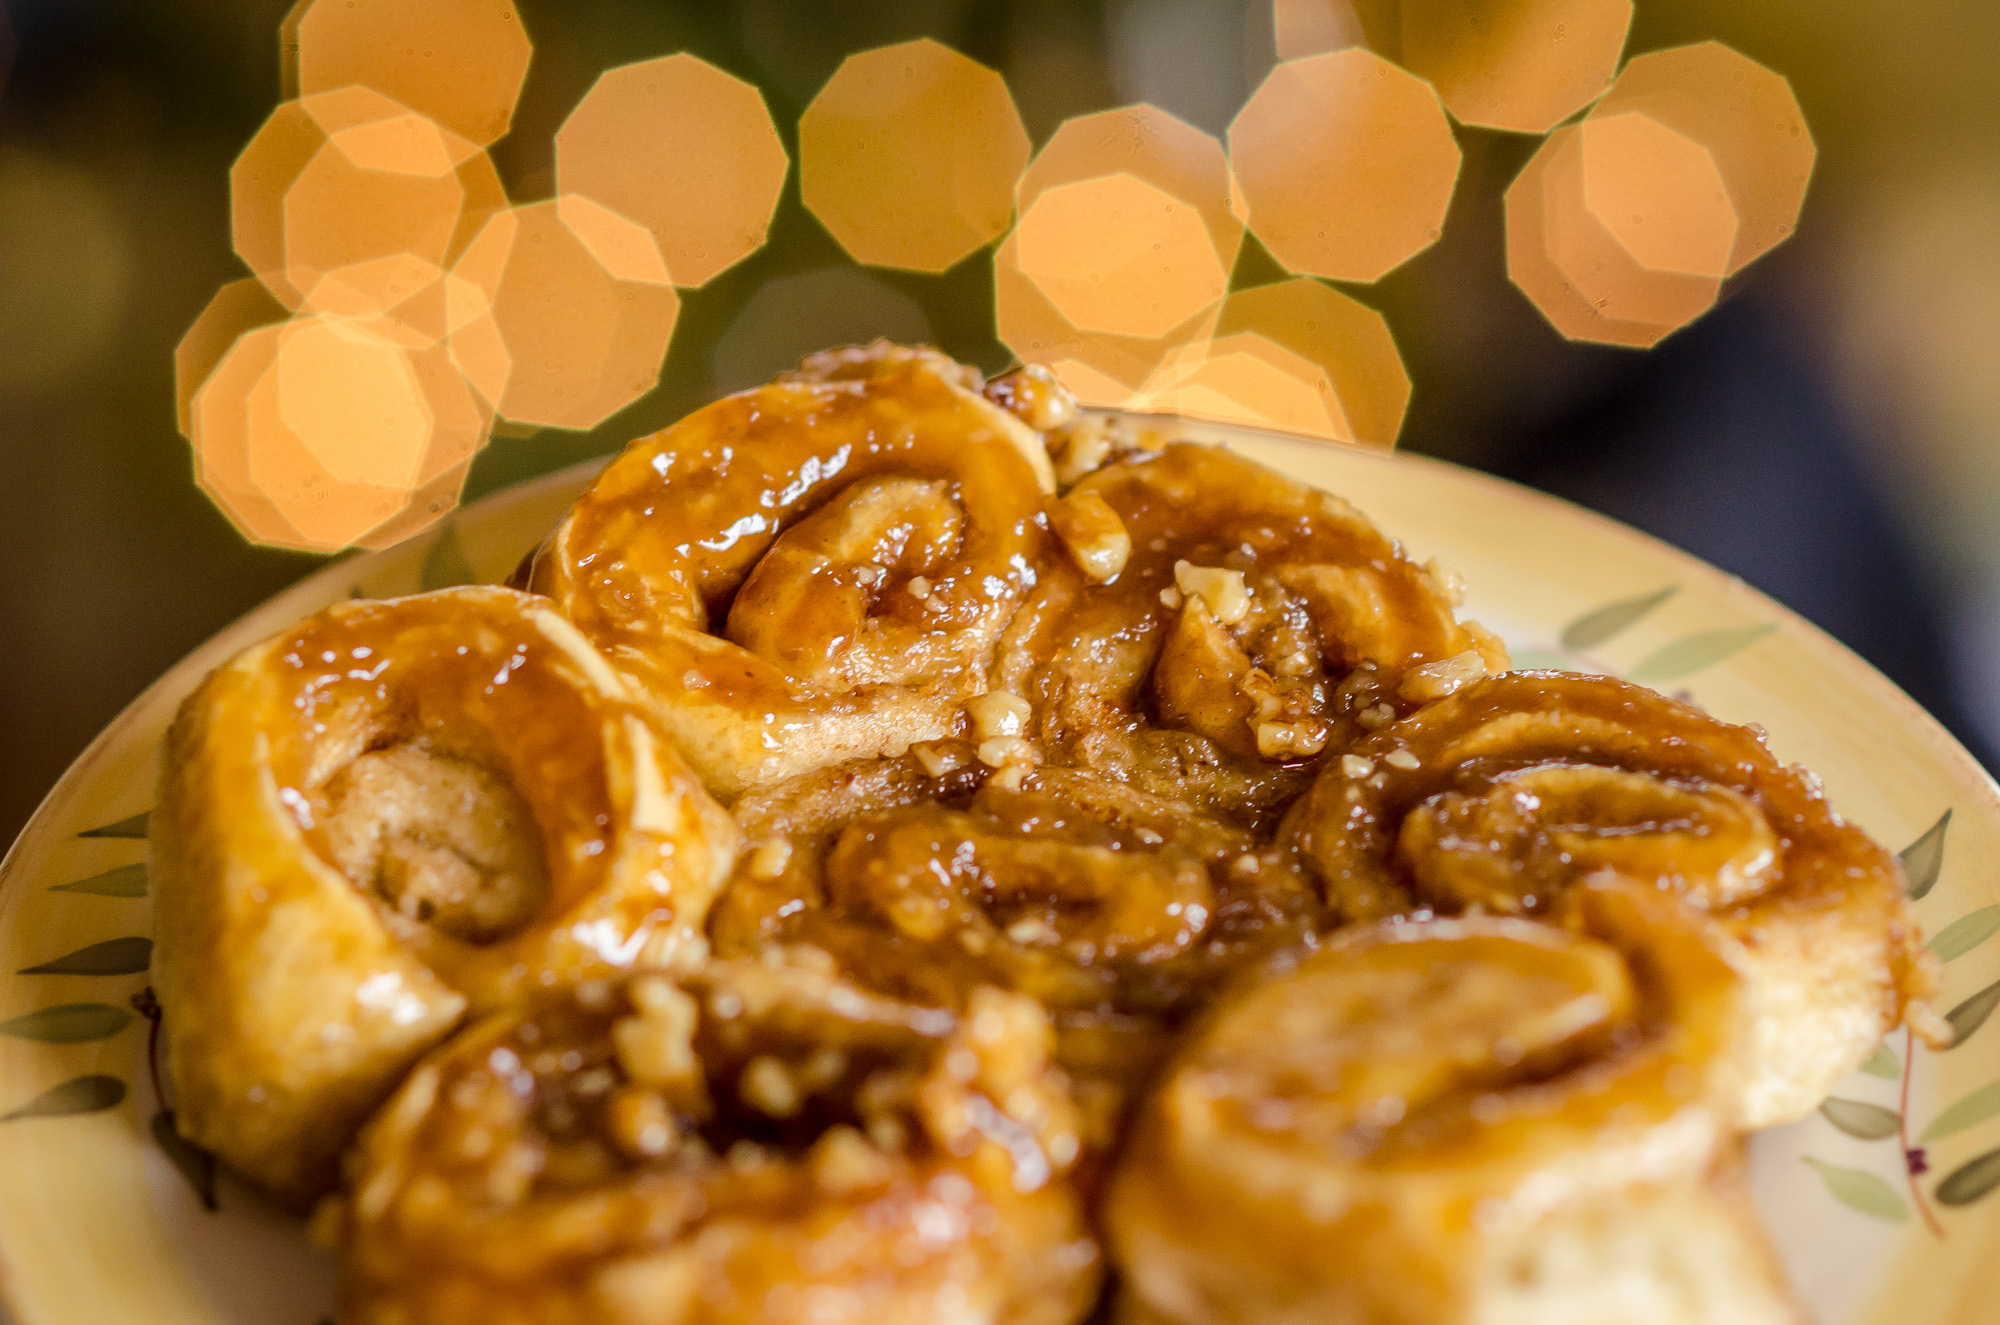 Sticky Buns On A Plate With Lights In The Background